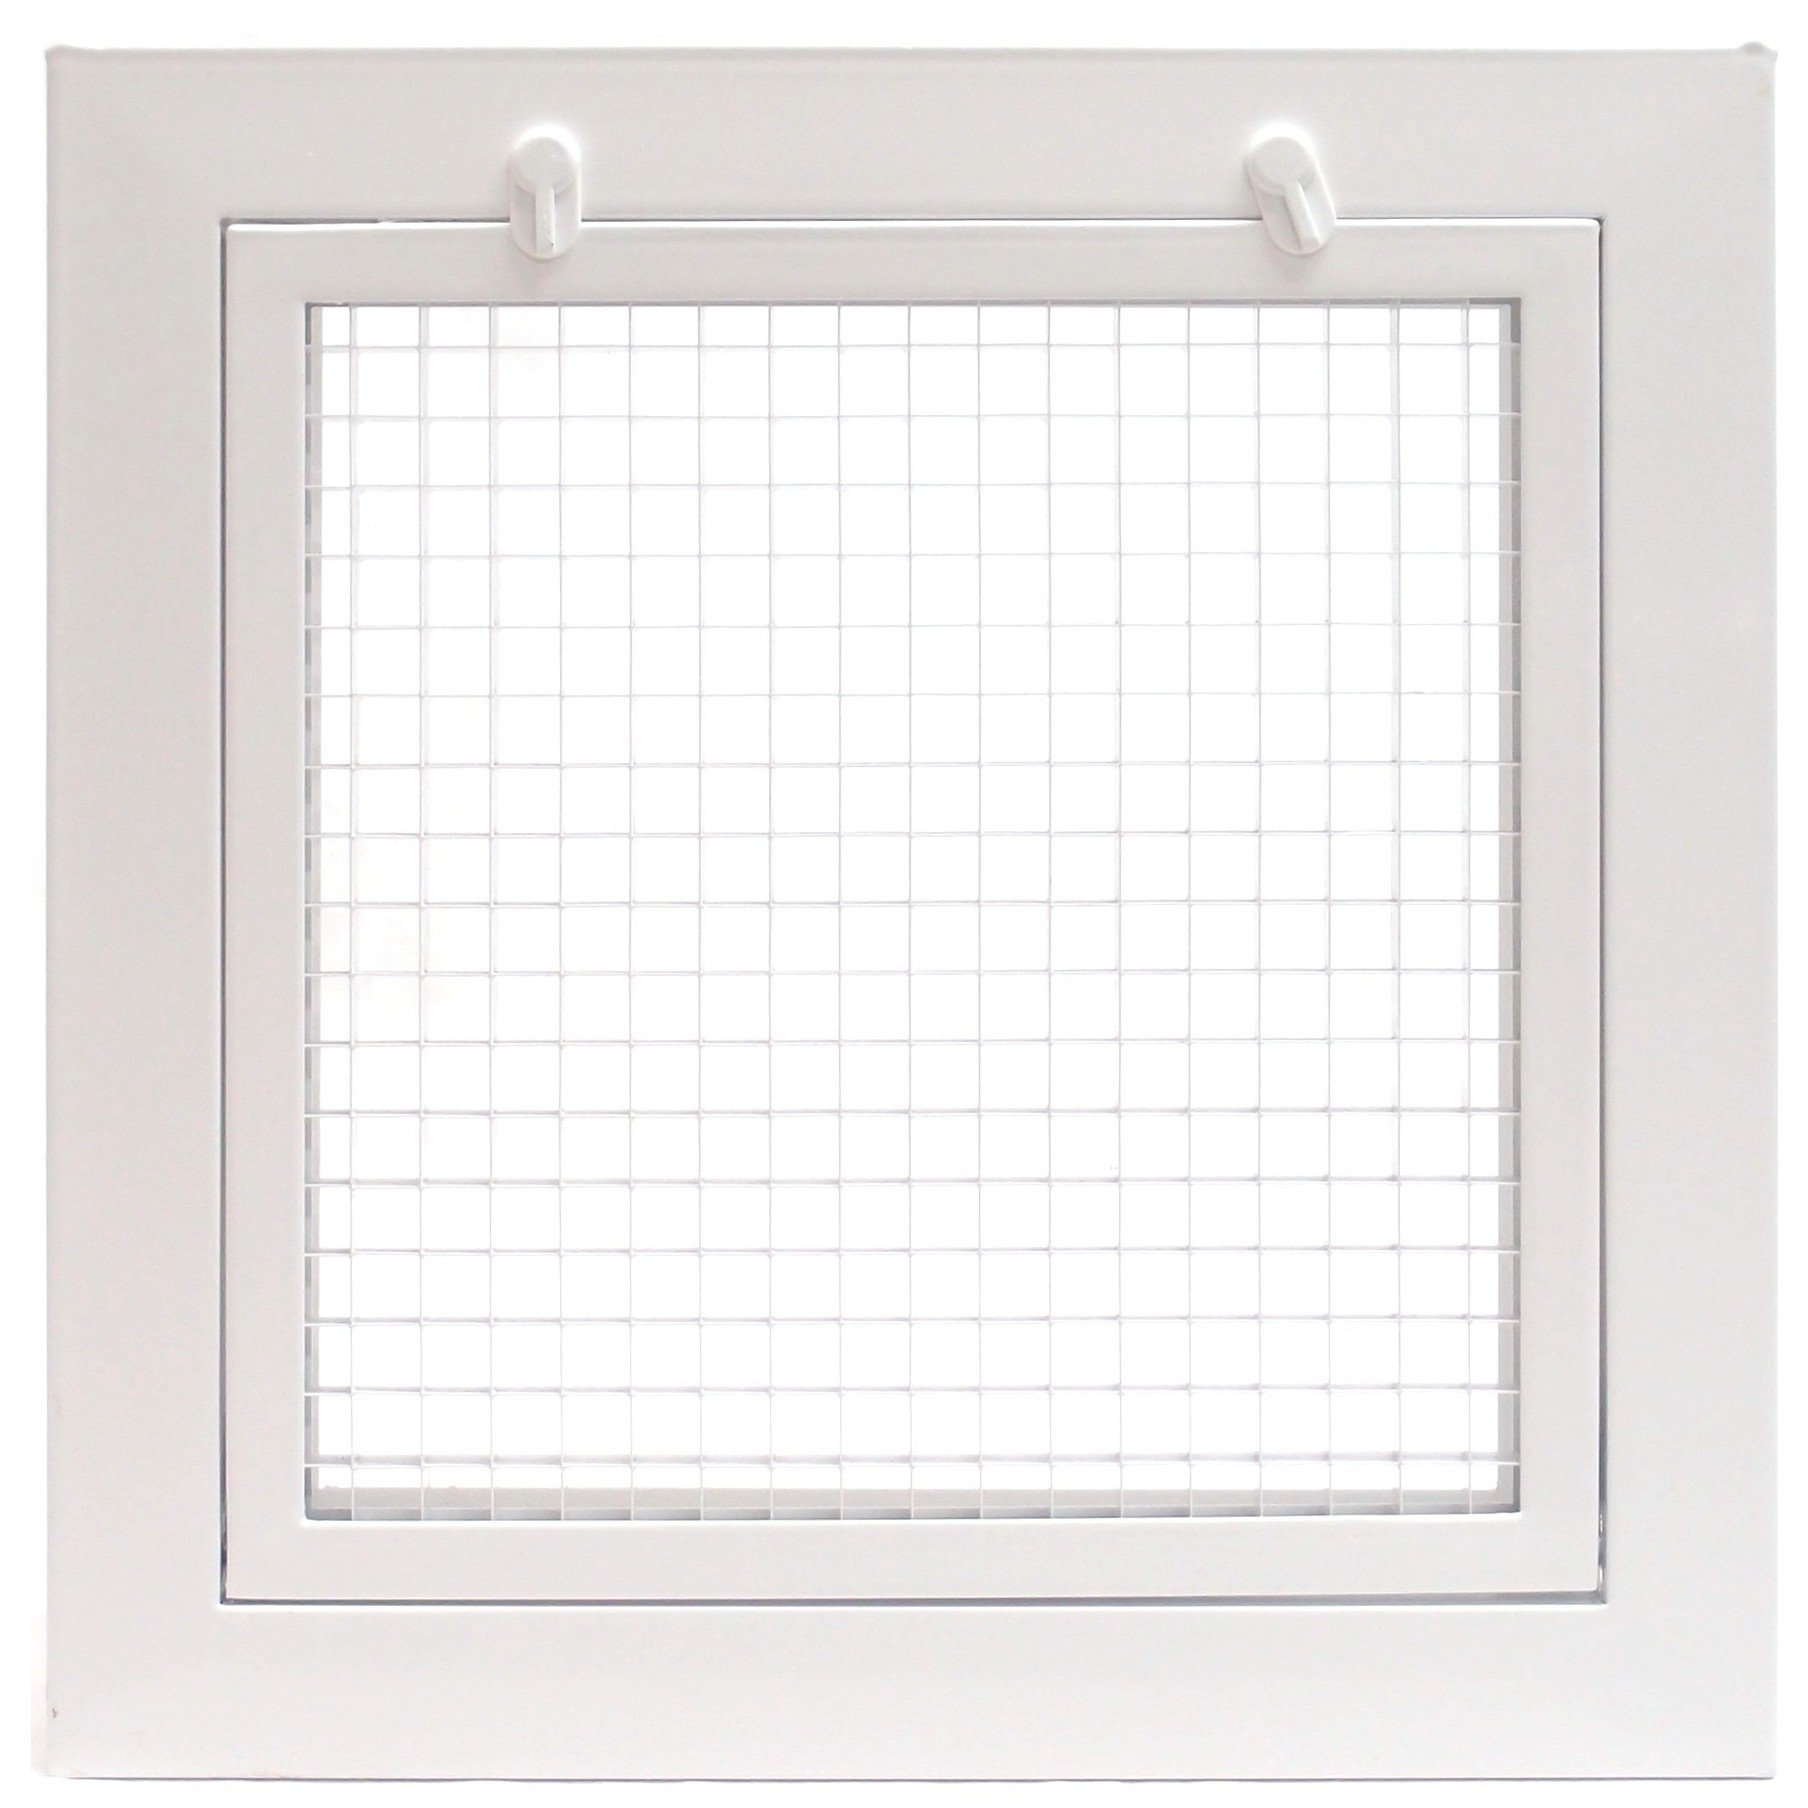 20'' x 30'' Cube Core Eggcrate Return Air Filter Grille for 1'' Filter - Aluminum - White [Outer Dimensions: 22.5'' w X 32.5'' h]